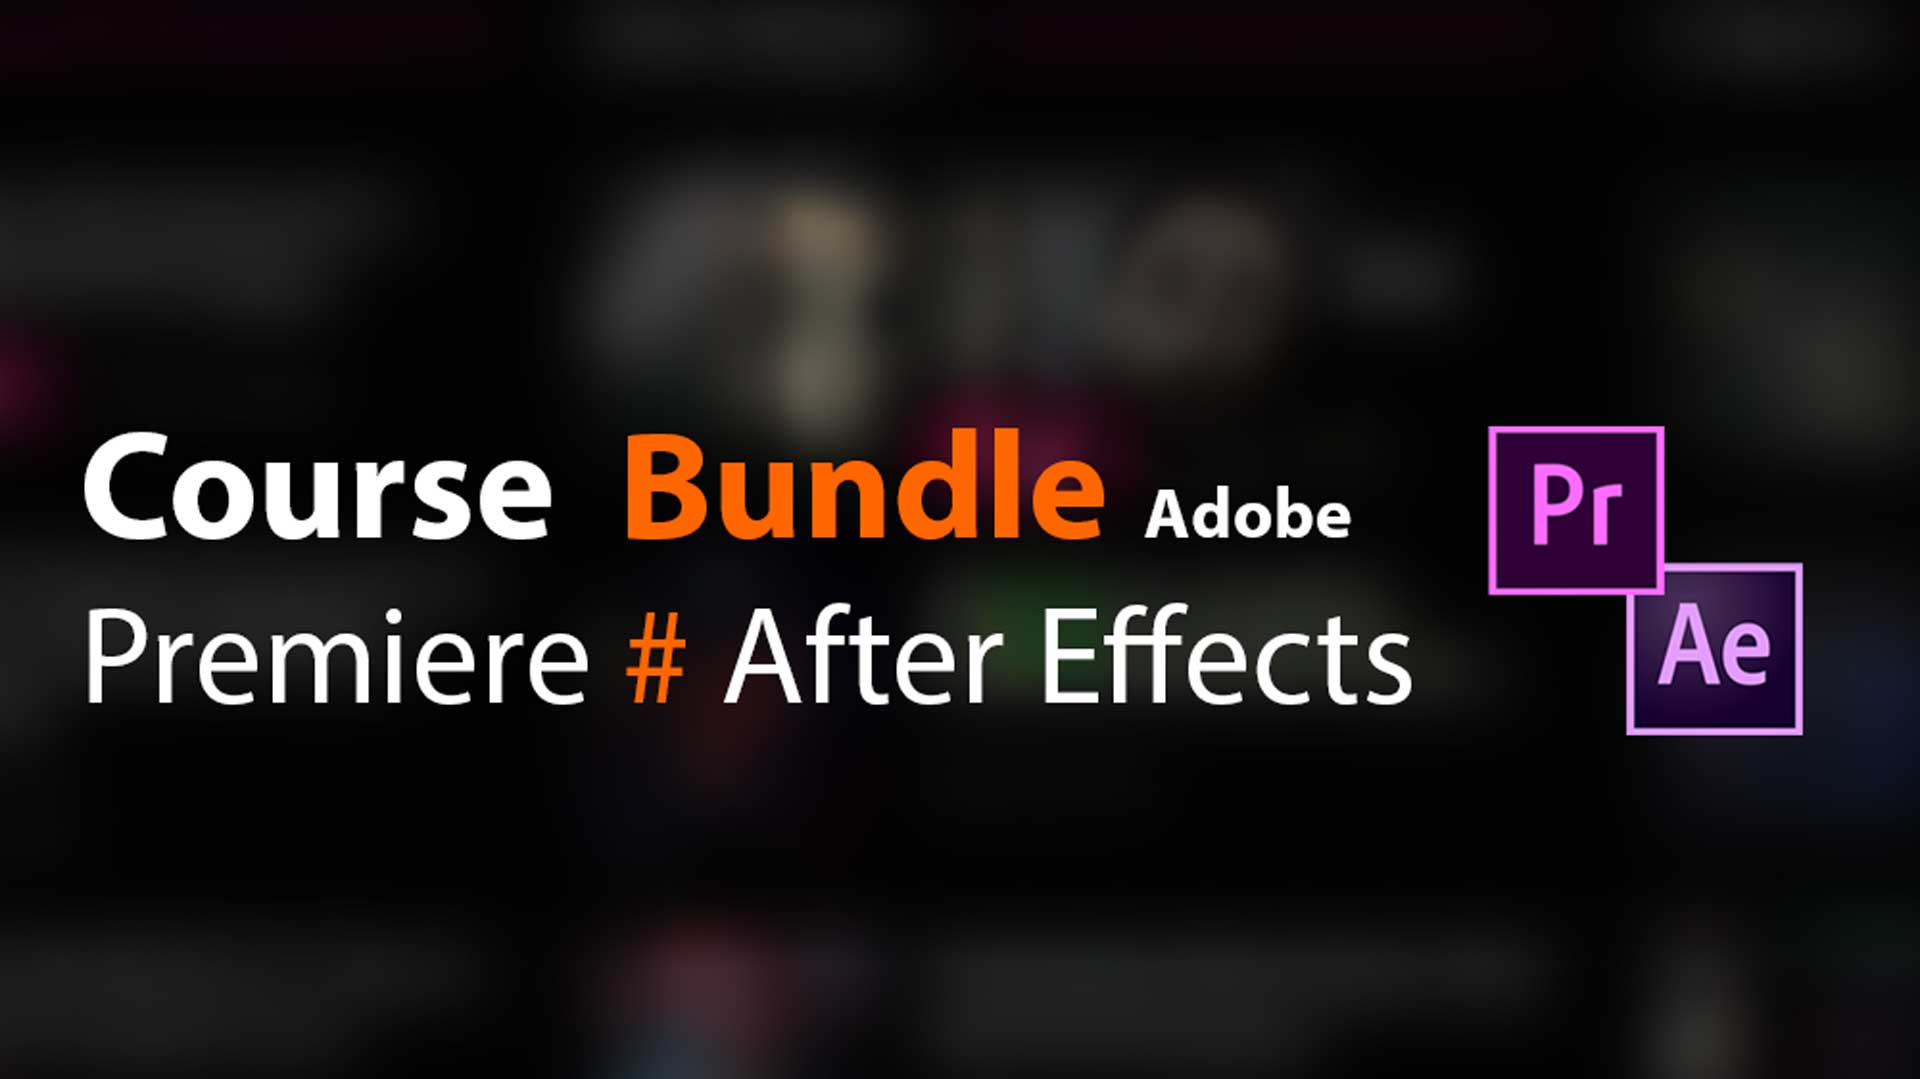 After Effects and premiere pro course bundle